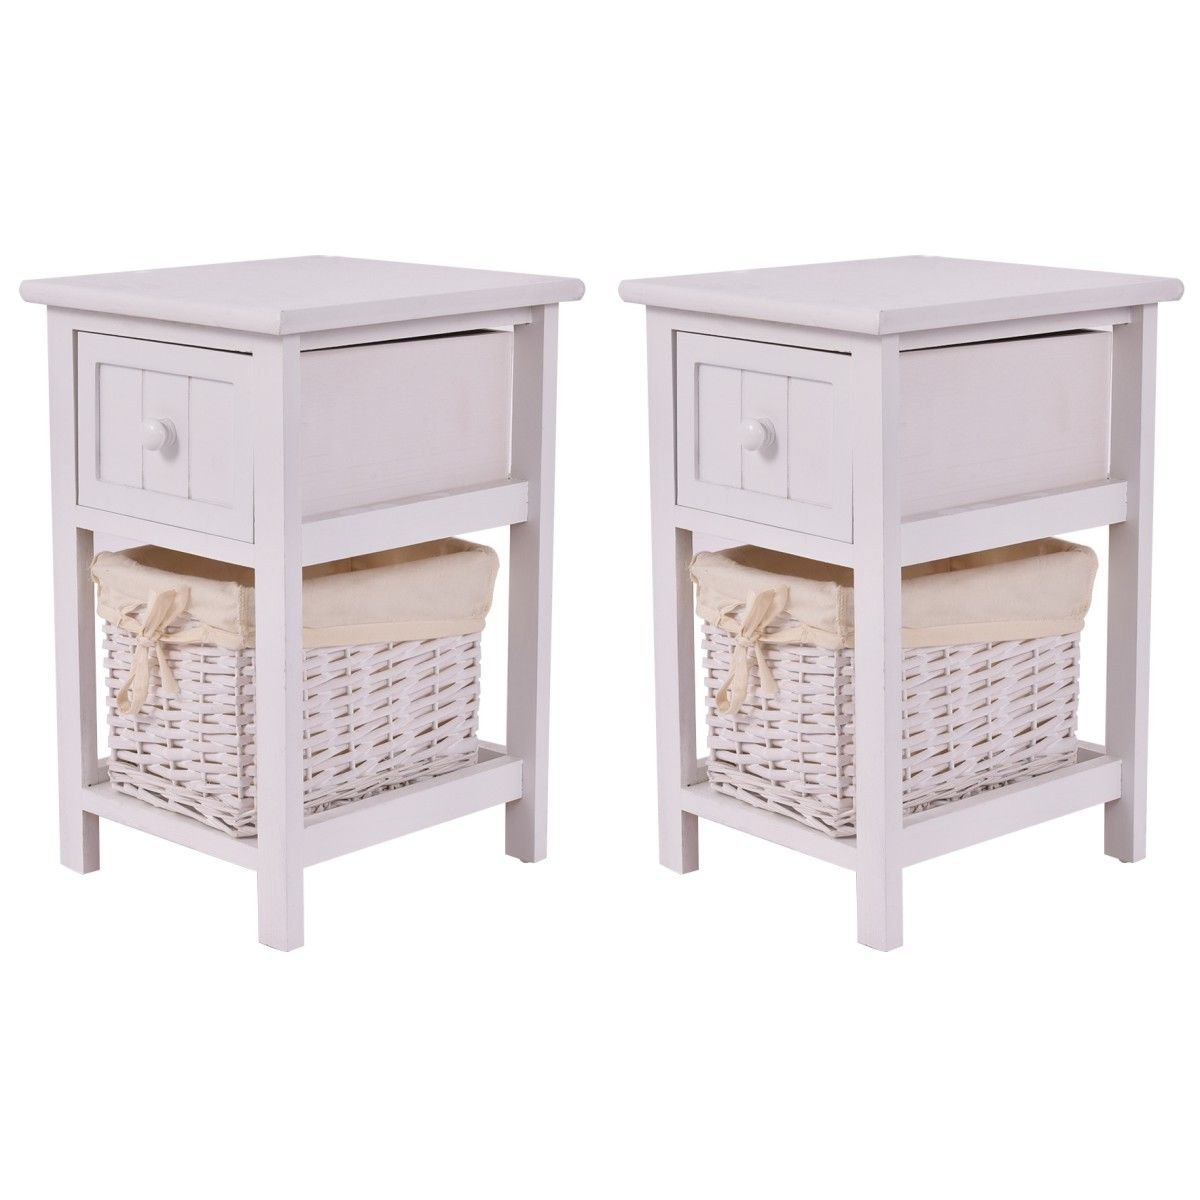 Giantex Set of 2 Mini Night Stand 2 Layer 1 Drawer Bedside End Table Organizer Wood W/Basket